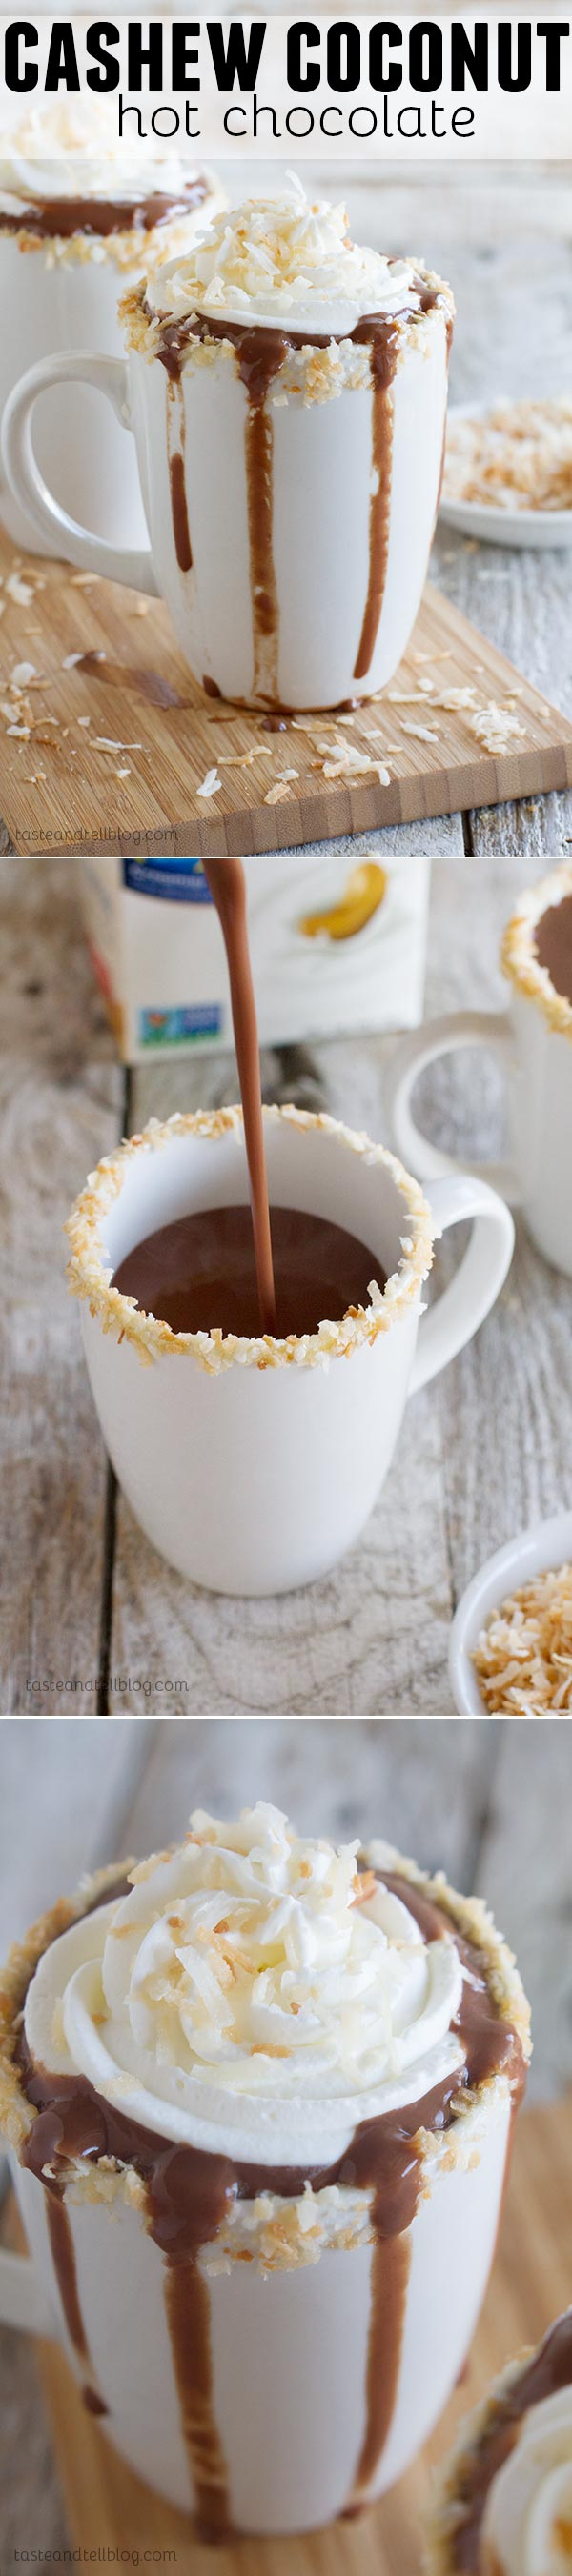 Cashew Coconut Hot Chocolate Recipe - thick and creamy and full of flavor!